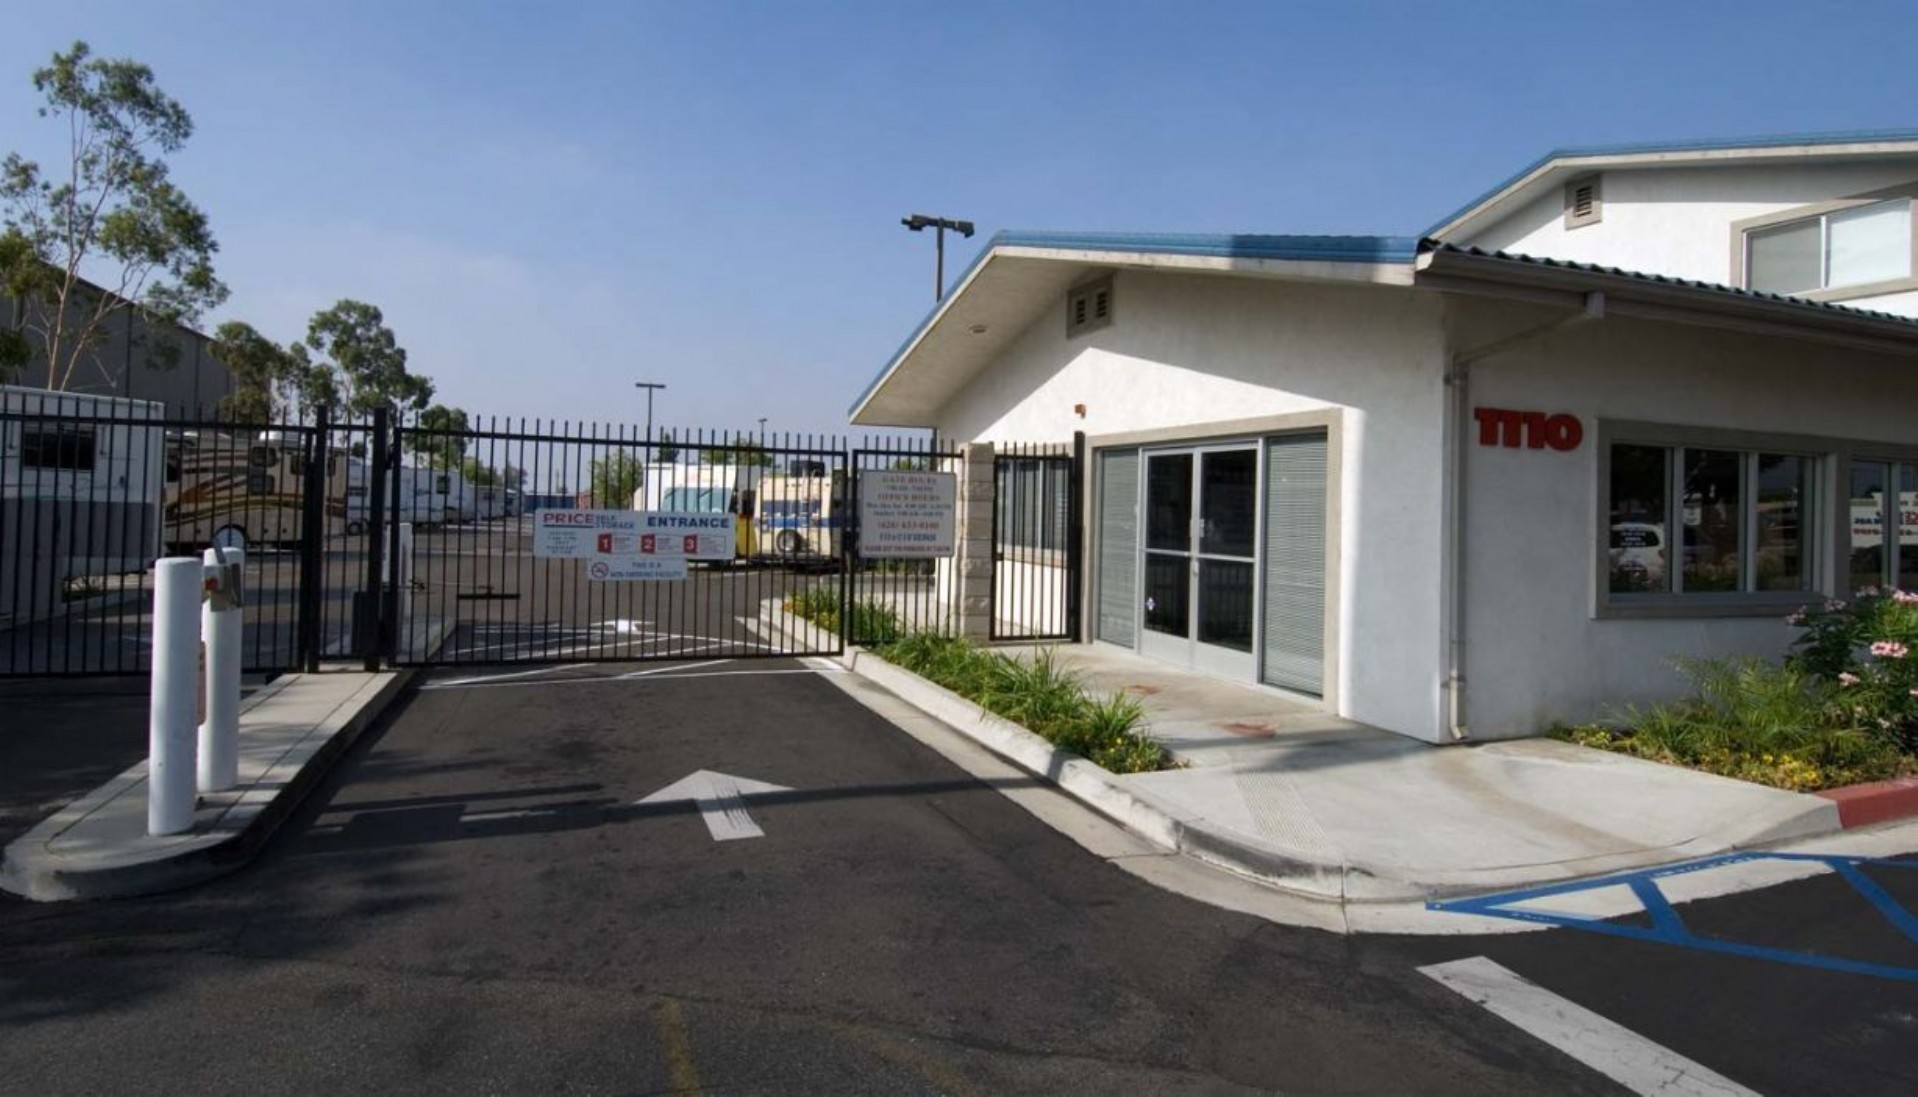 Price Self Storage Azusa rental office and entrance gate